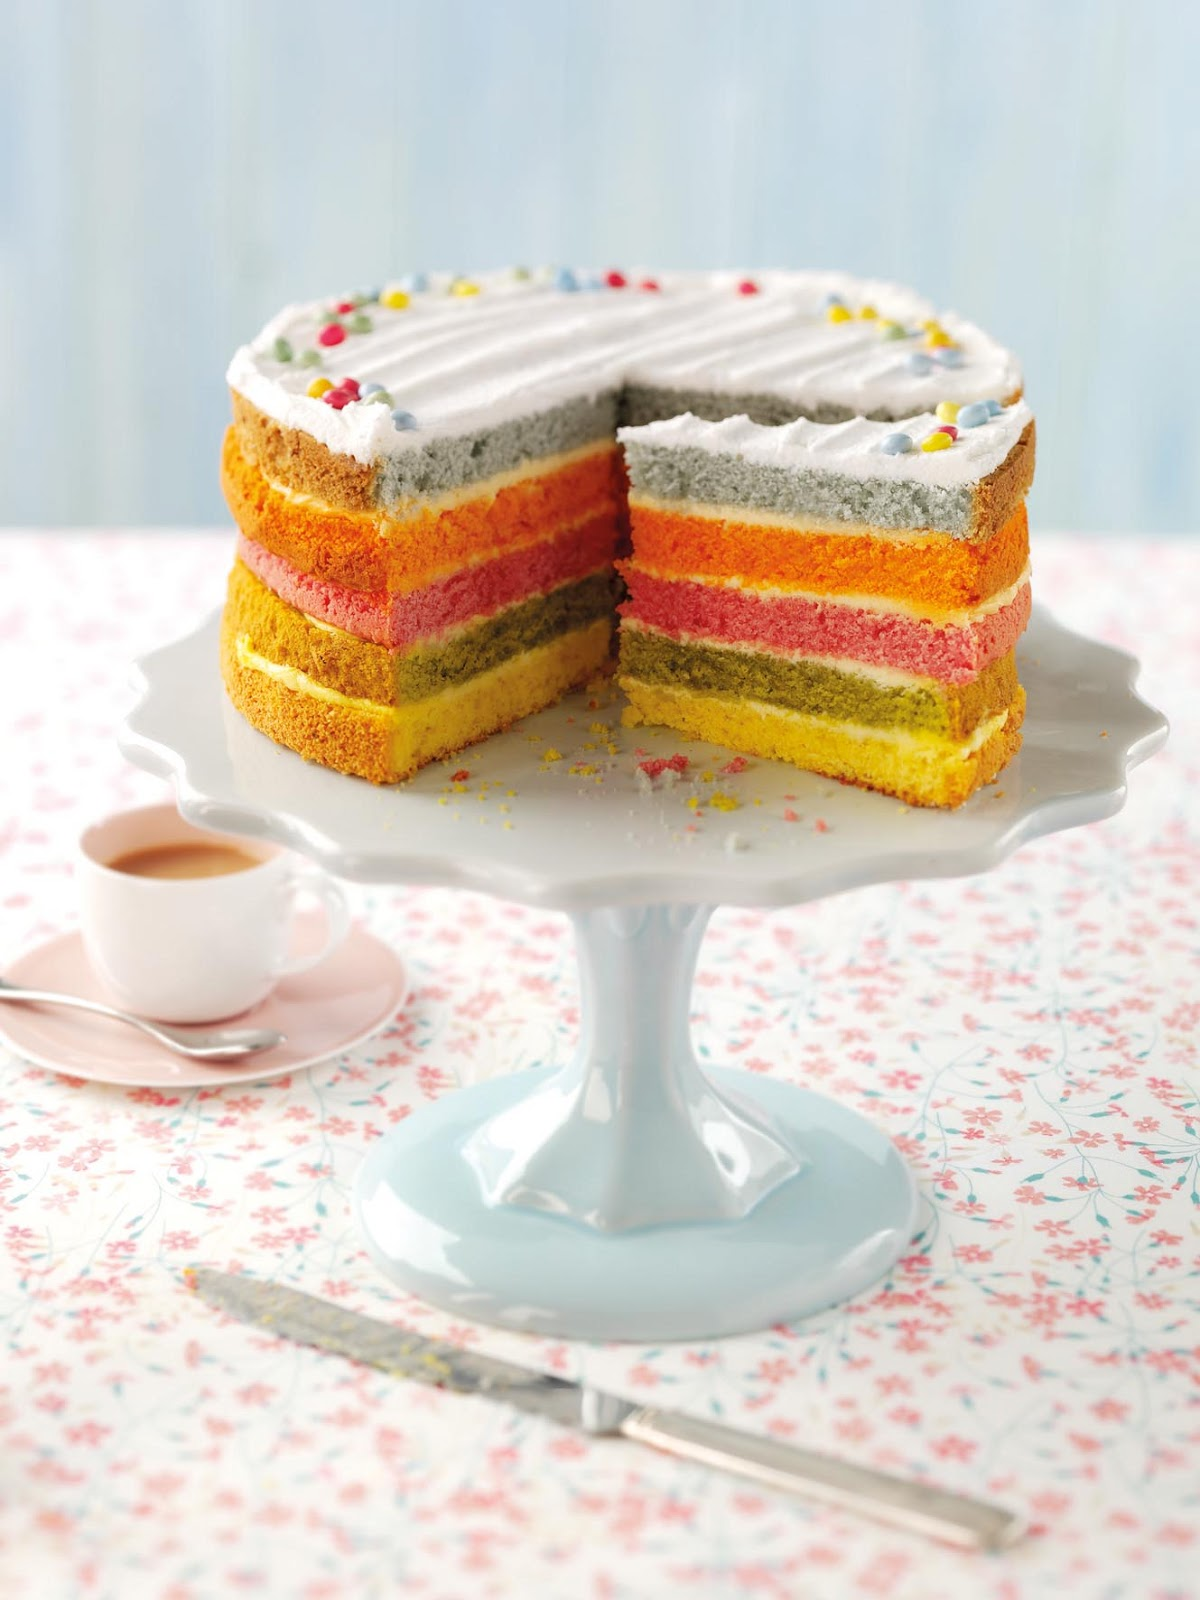 Grocery Gems New Celebration Cakes At Asda Including A Rainbow Cake